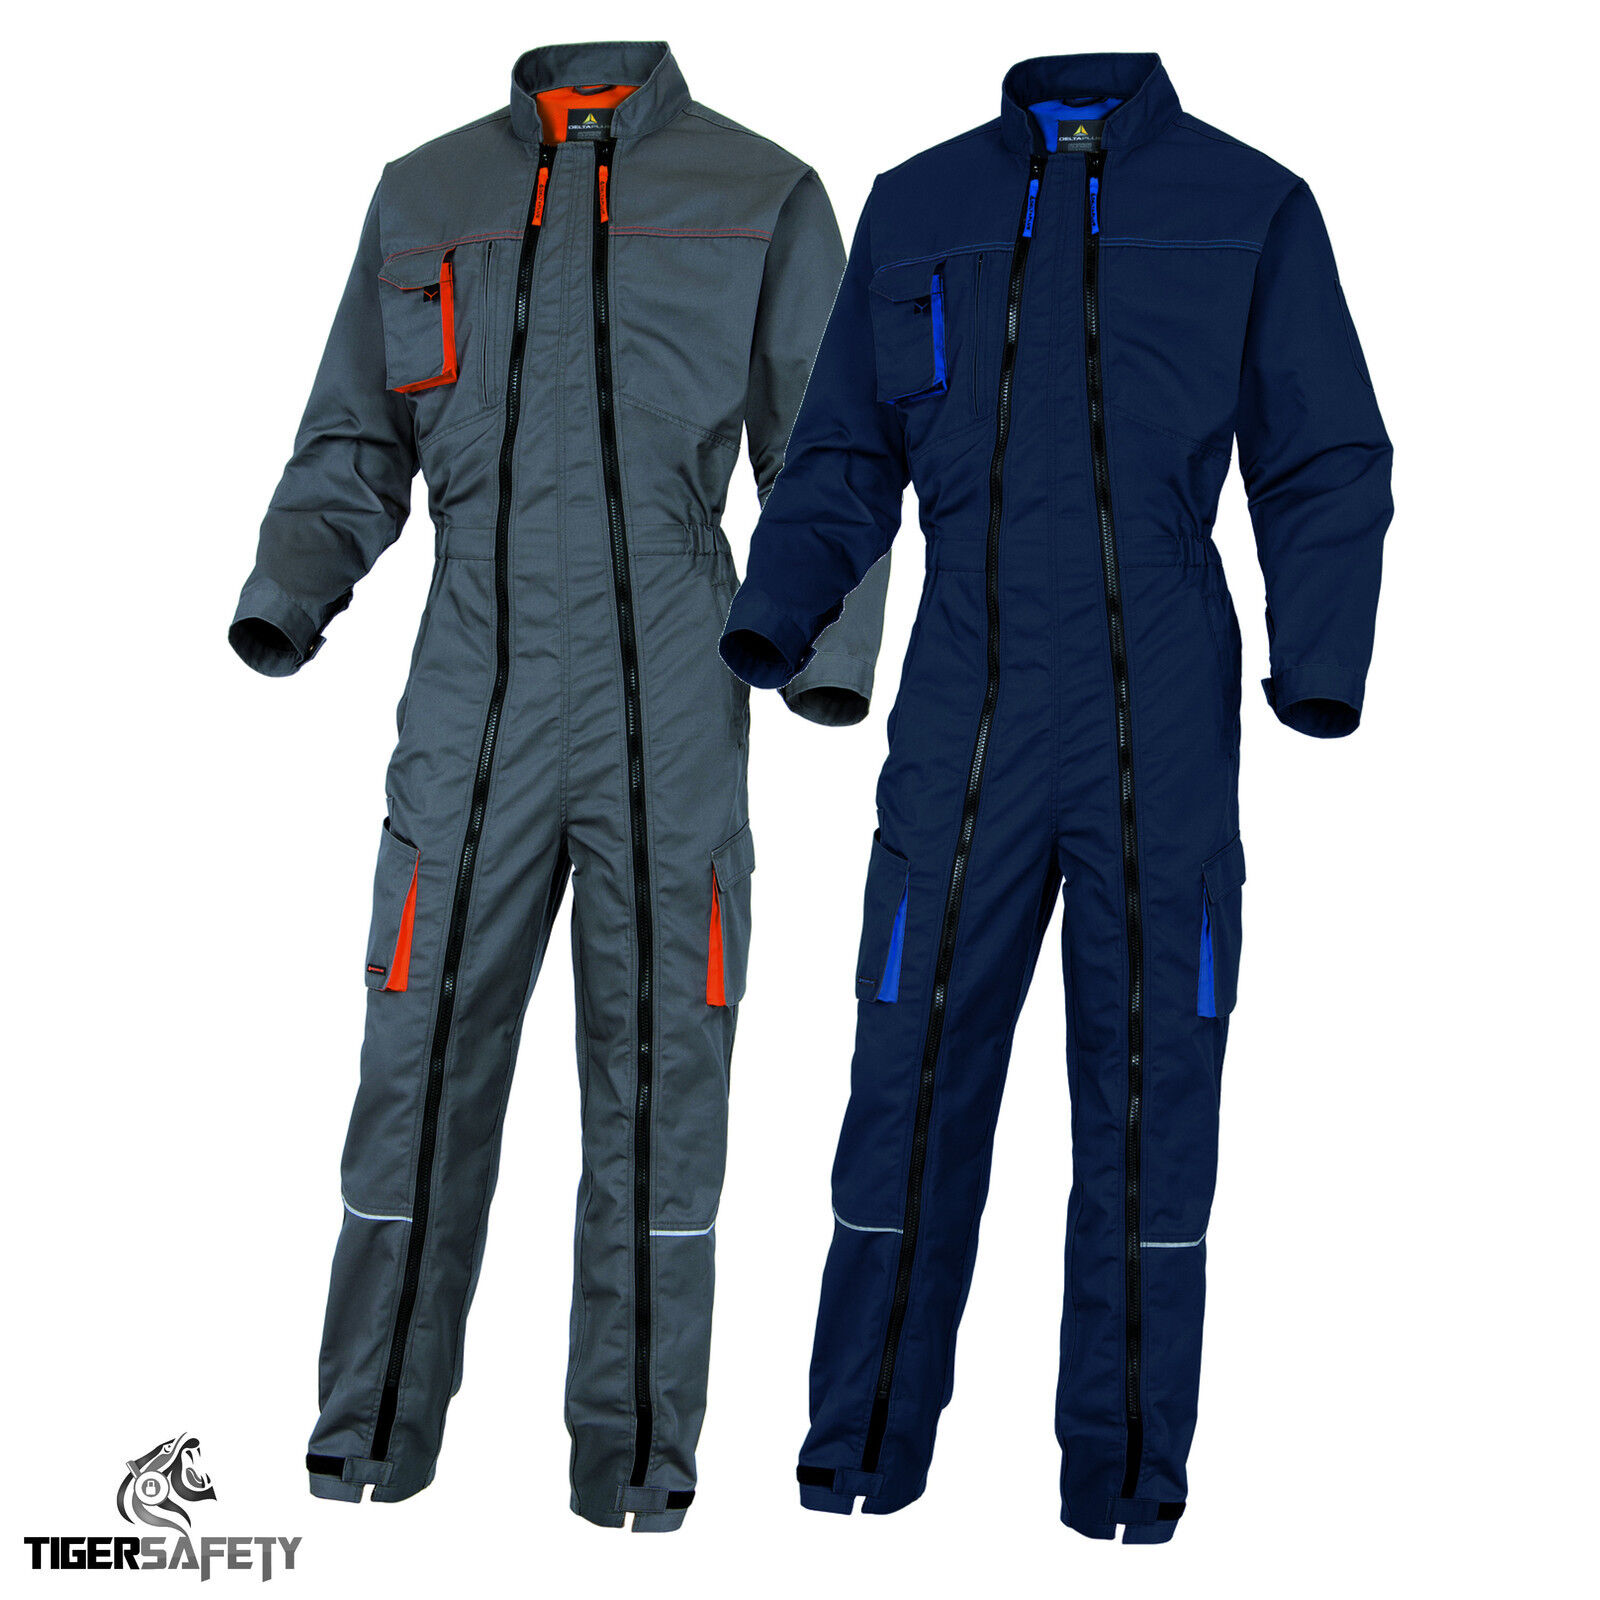 Delta Plus Panoply MCCOM Mach2 Corporate Blue Work Overalls Coveralls Boilersuit